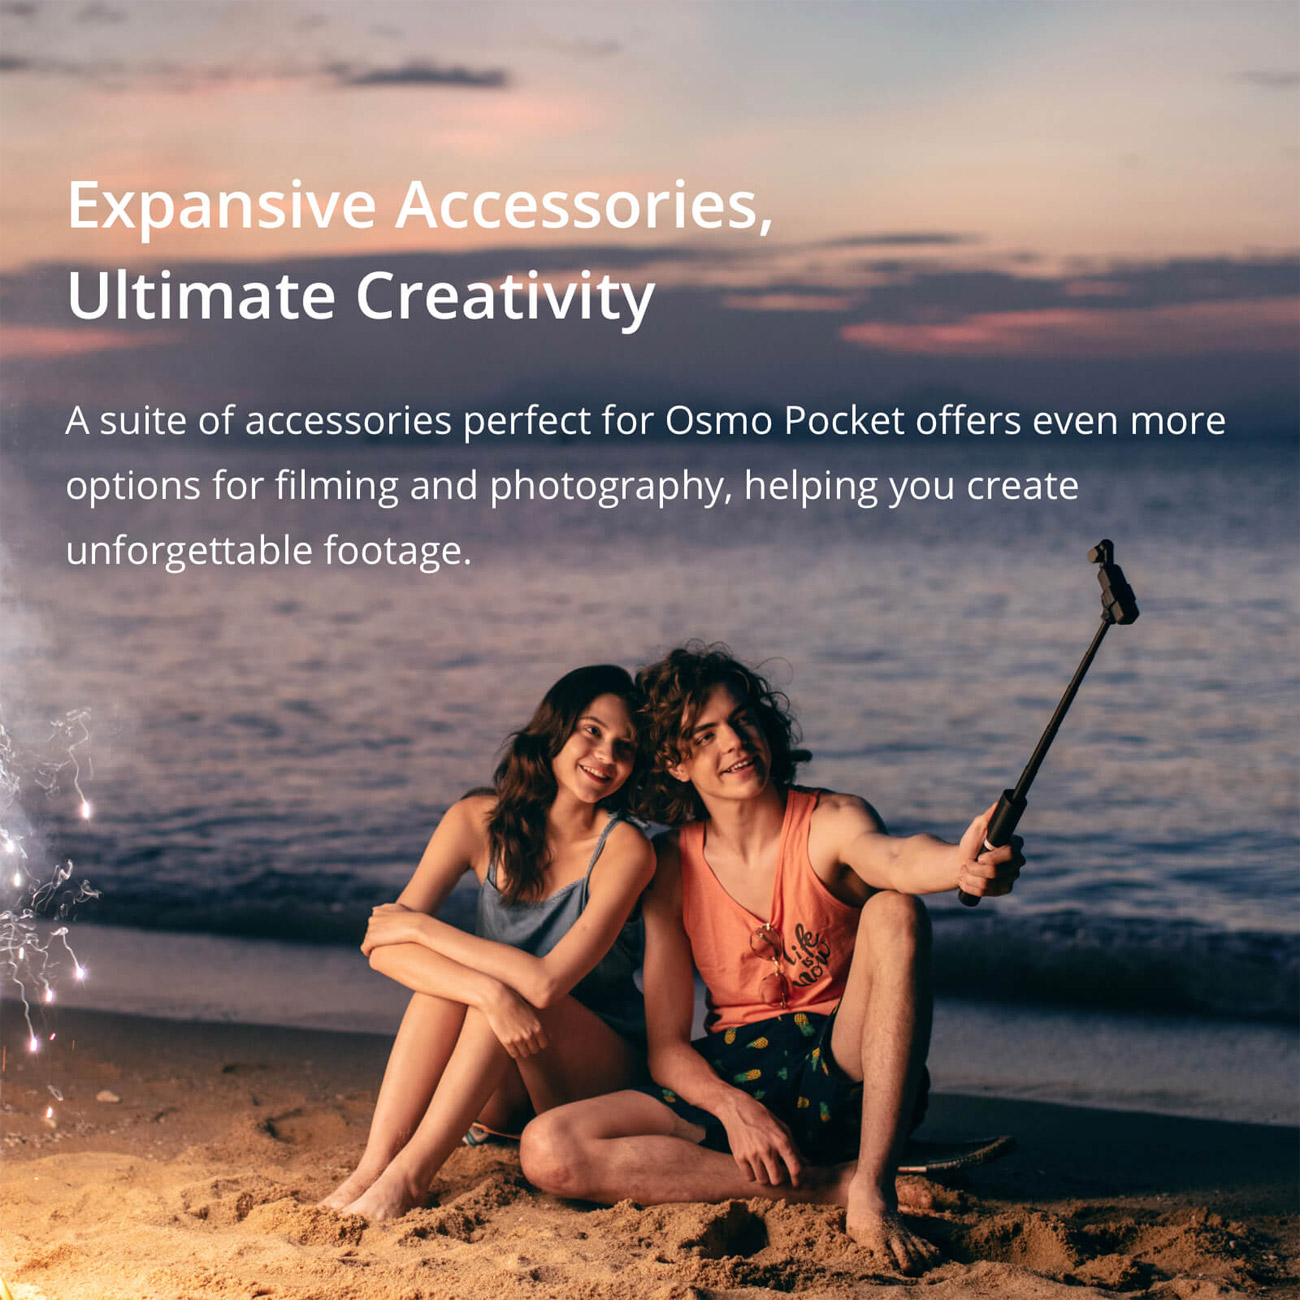 Expansive Accessories, Ultimate Creativity banner showing a boy and girl on the beach at sunset taking a selfie. The banner text reads: A suite of accessories perfect for Osmo Pocket offers even more options for filming and photography, helping you create unforgettable footage.